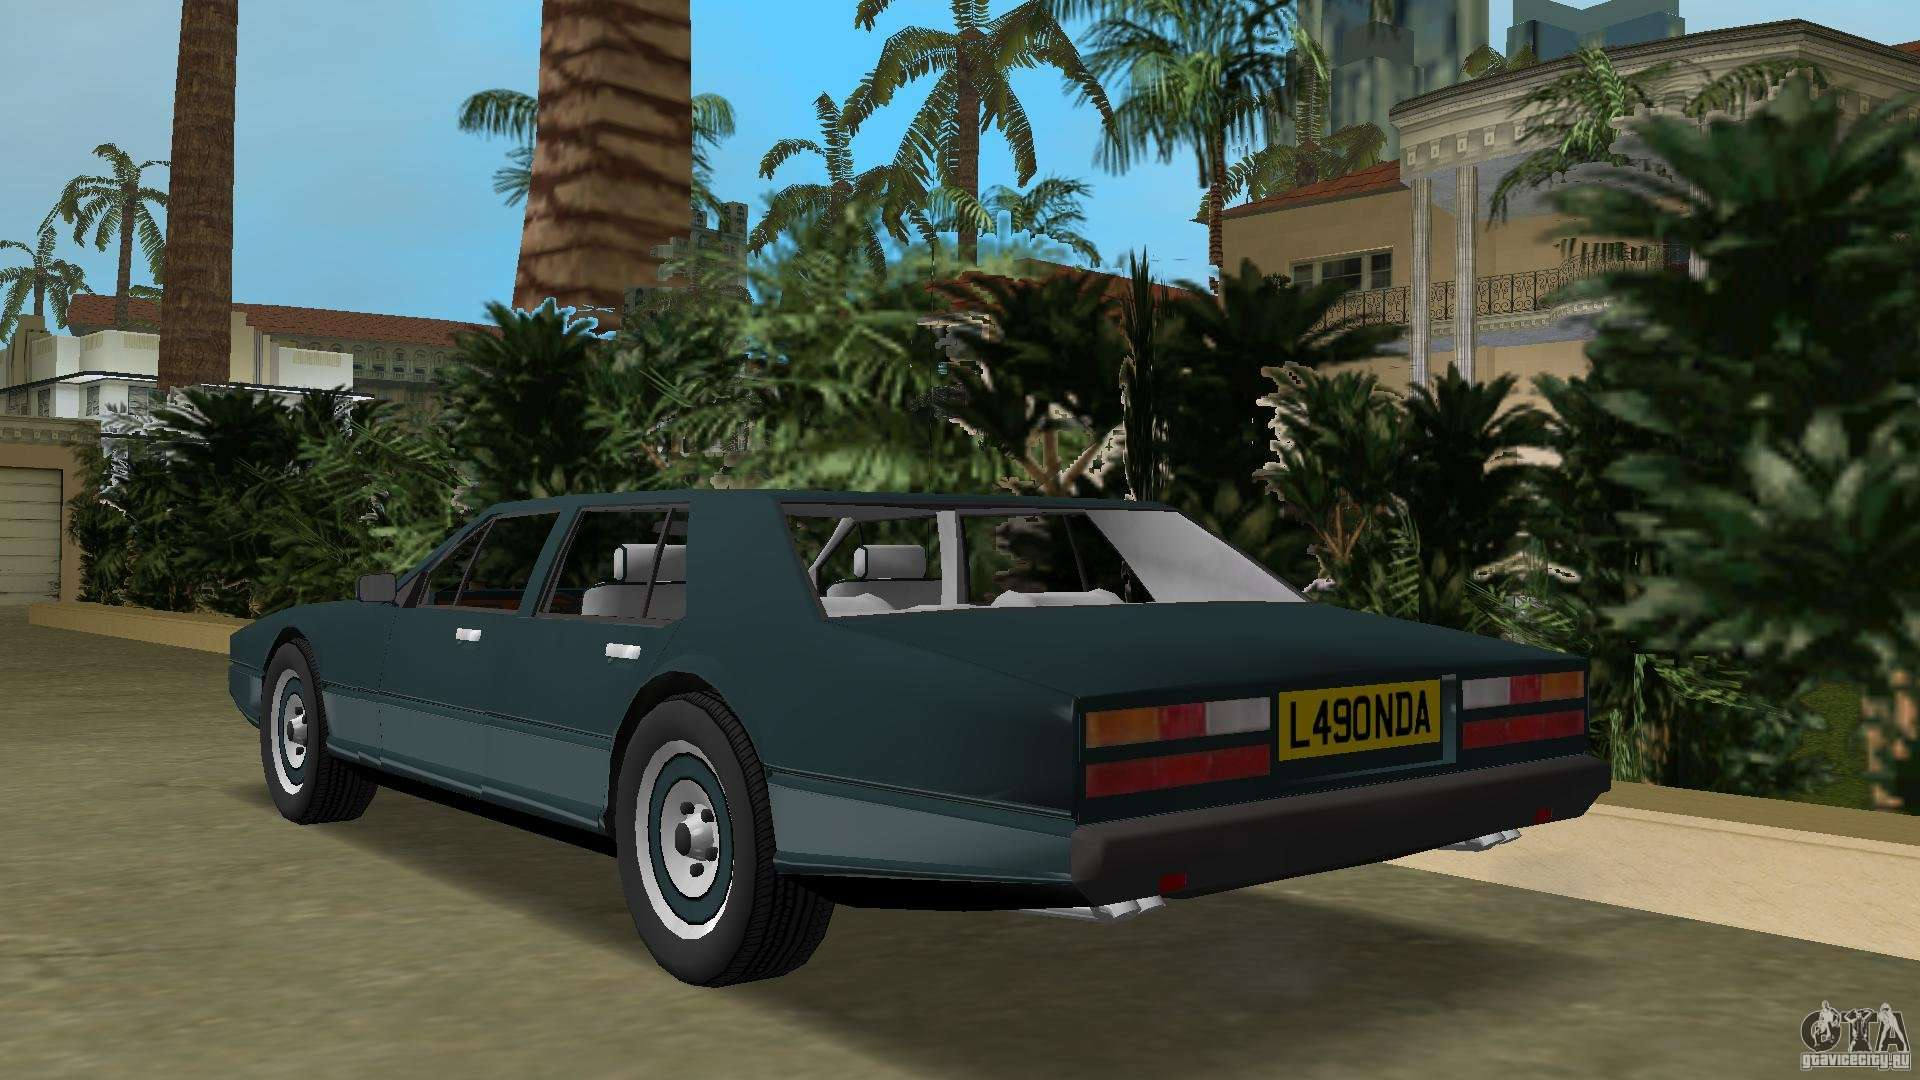 Aston Martin Lagonda I 5 3 1976 1997 Para Gta Vice City